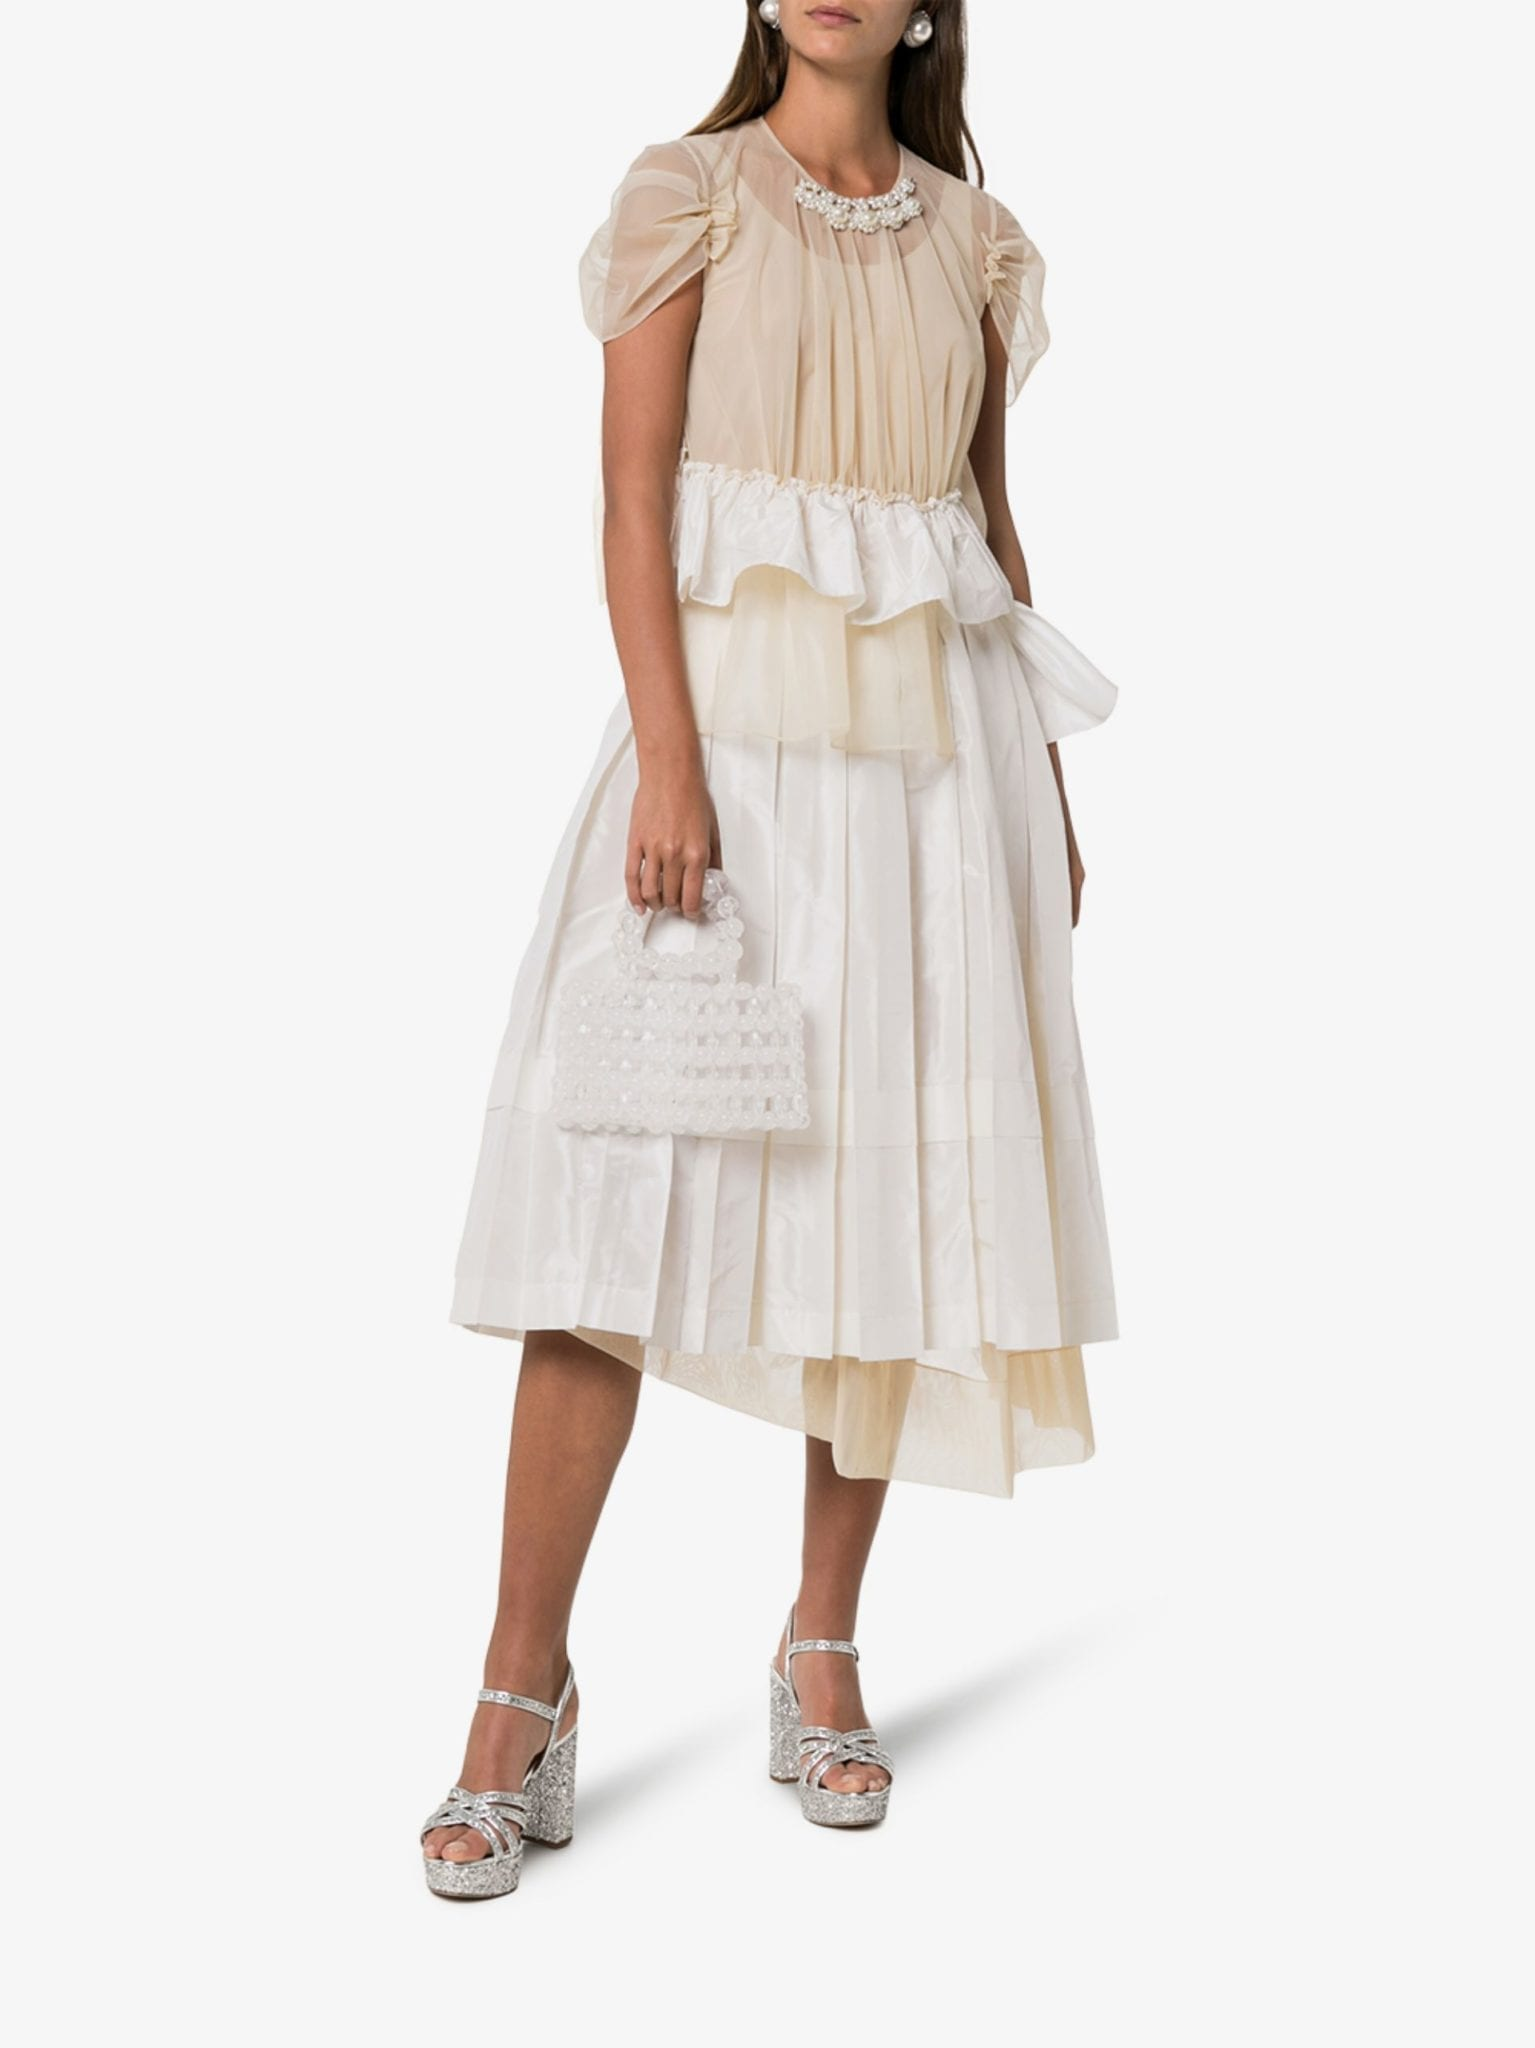 SIMONE ROCHA Chloe Deconstructed Midi Dress